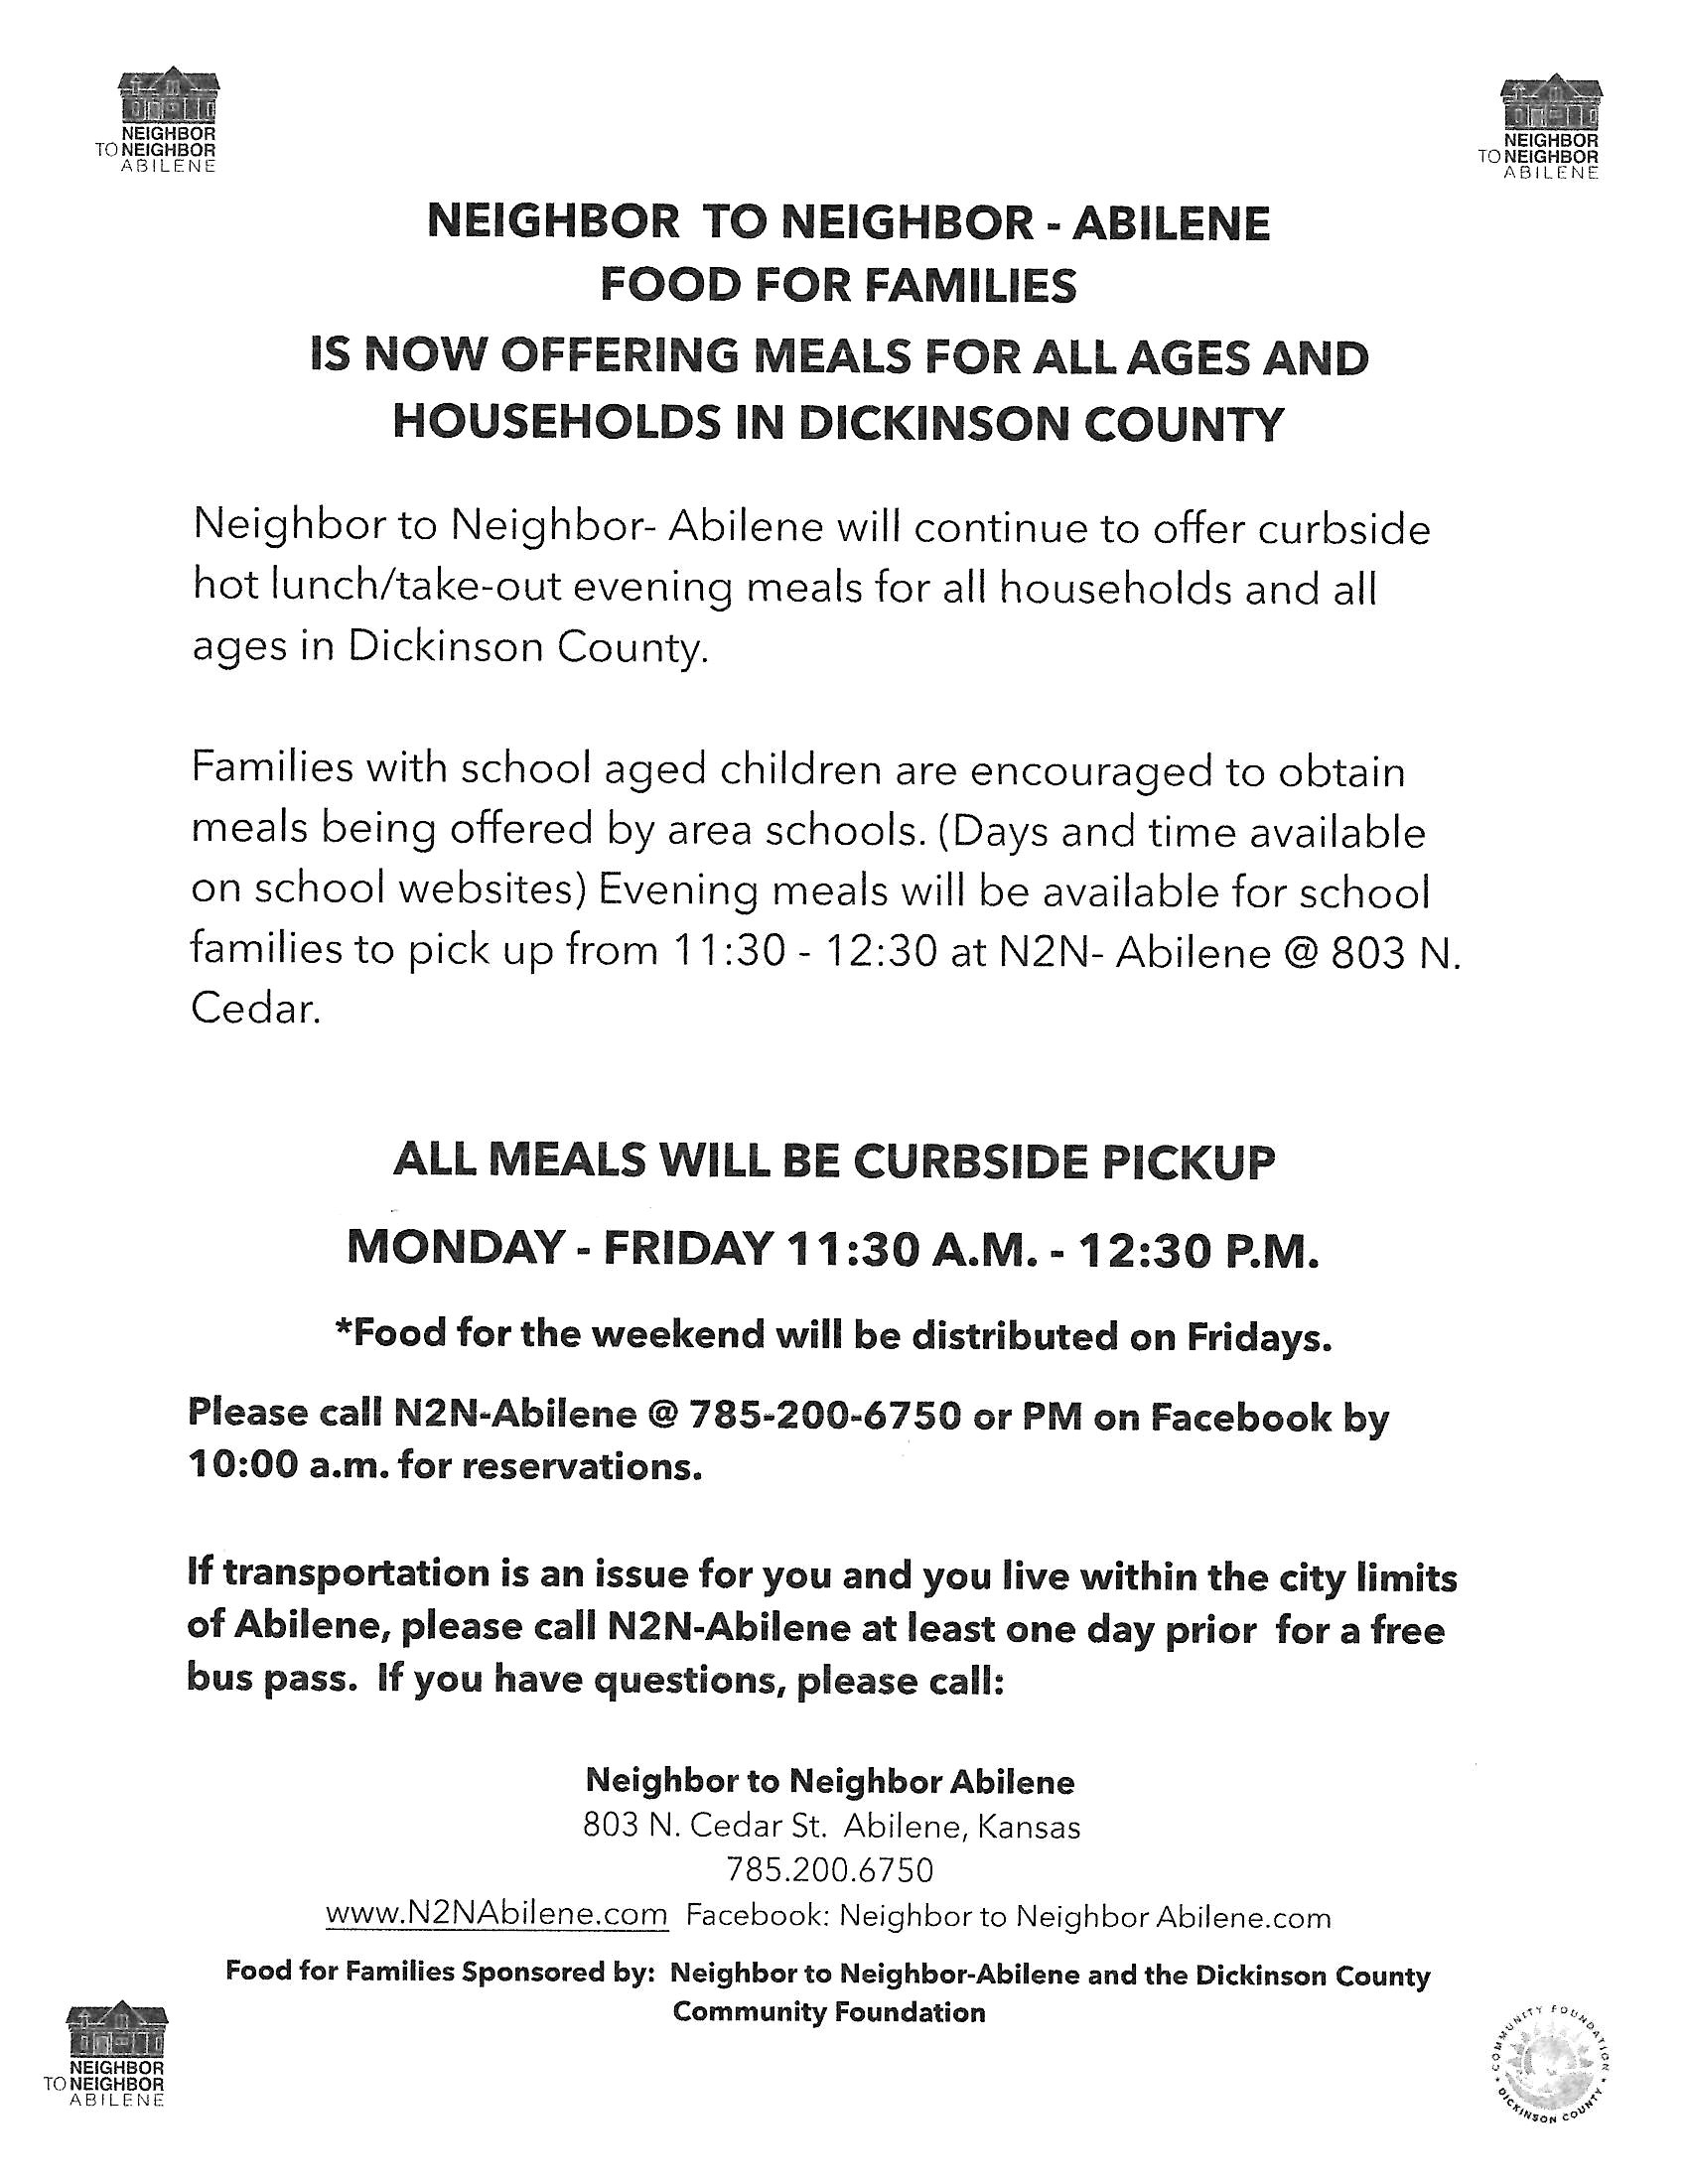 Neighbor to Neighbor Abilene, Food for families is now offering meals for all ages and households in Dickinson County. they will continue to offer curbside hot lunch/take-out evening meals for all house holds and all ages in Dickinson County. Call n2n Abilene 785-2006750 or PM on Facebook by 10am for reservations.